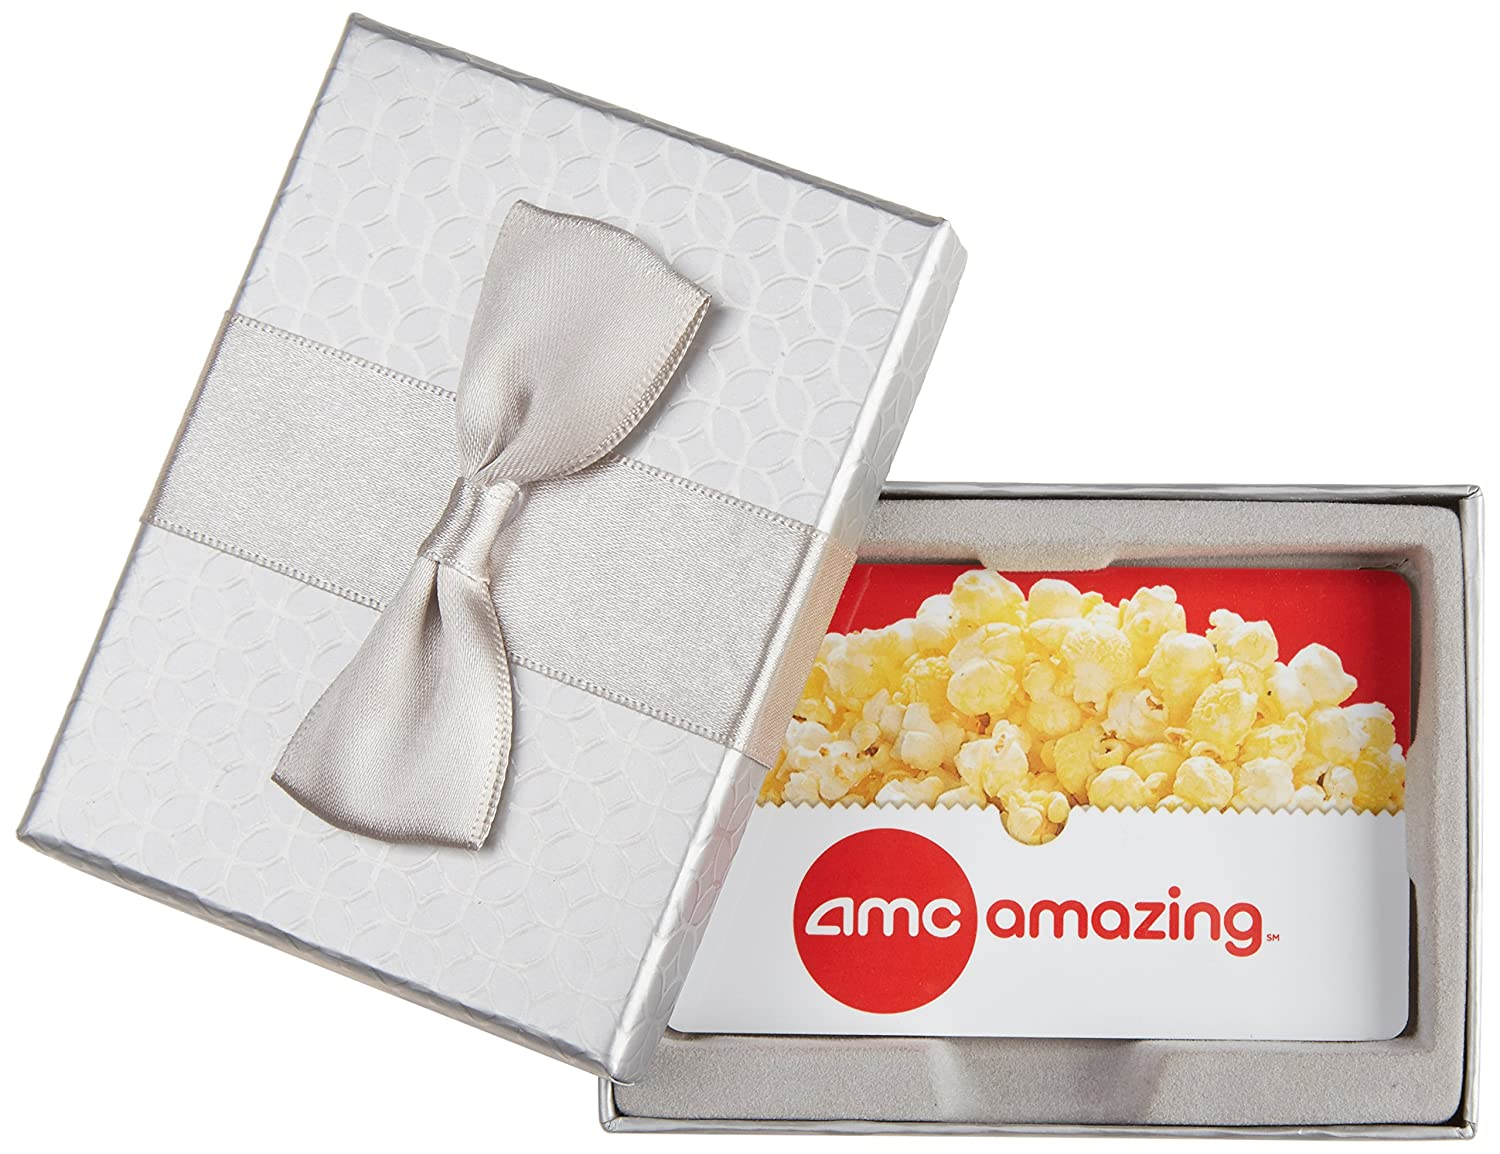 Amazon.com: AMC Theatres $50 Gift Card - In a Gift Box: Gift Cards